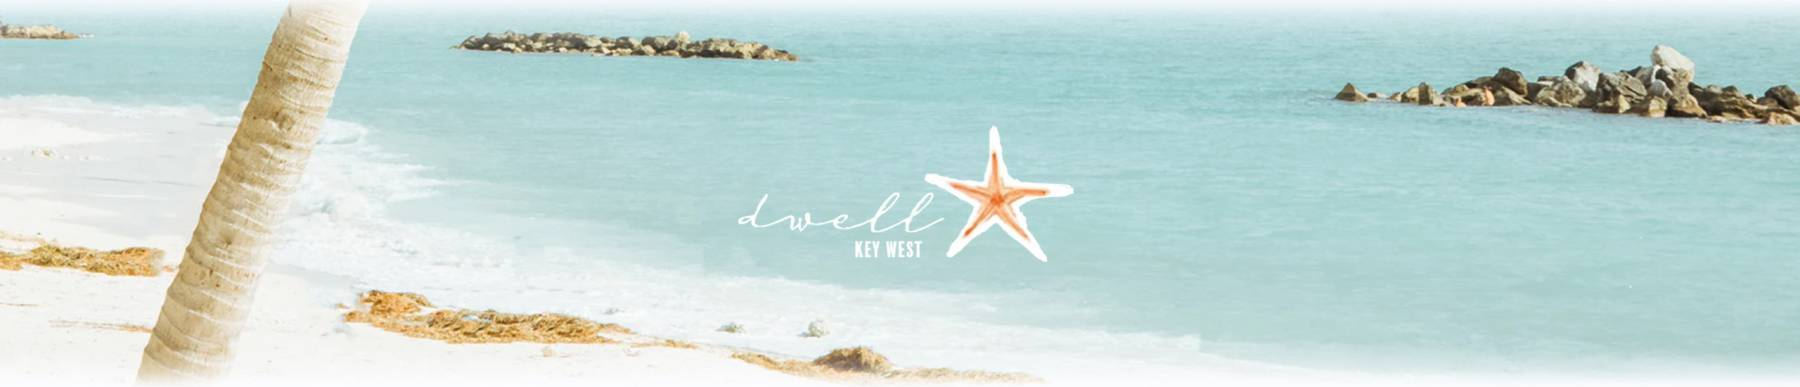 Dwell Key West banner